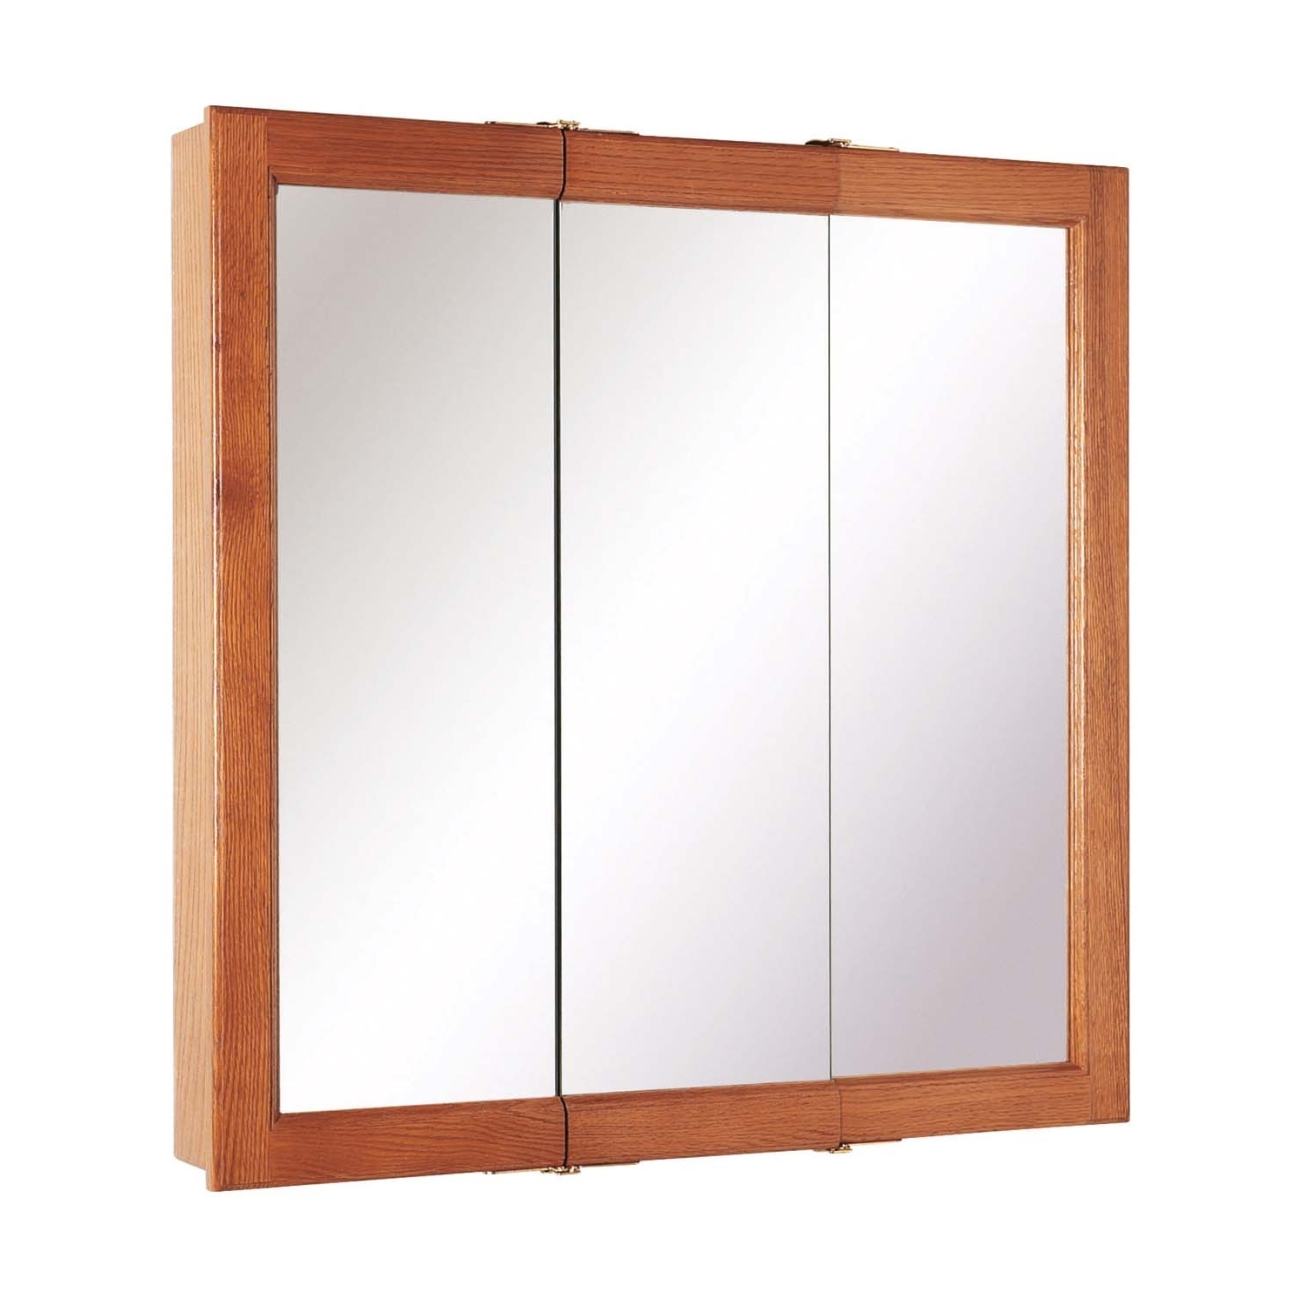 Permalink to Replacement Bathroom Cabinet Mirror Doors